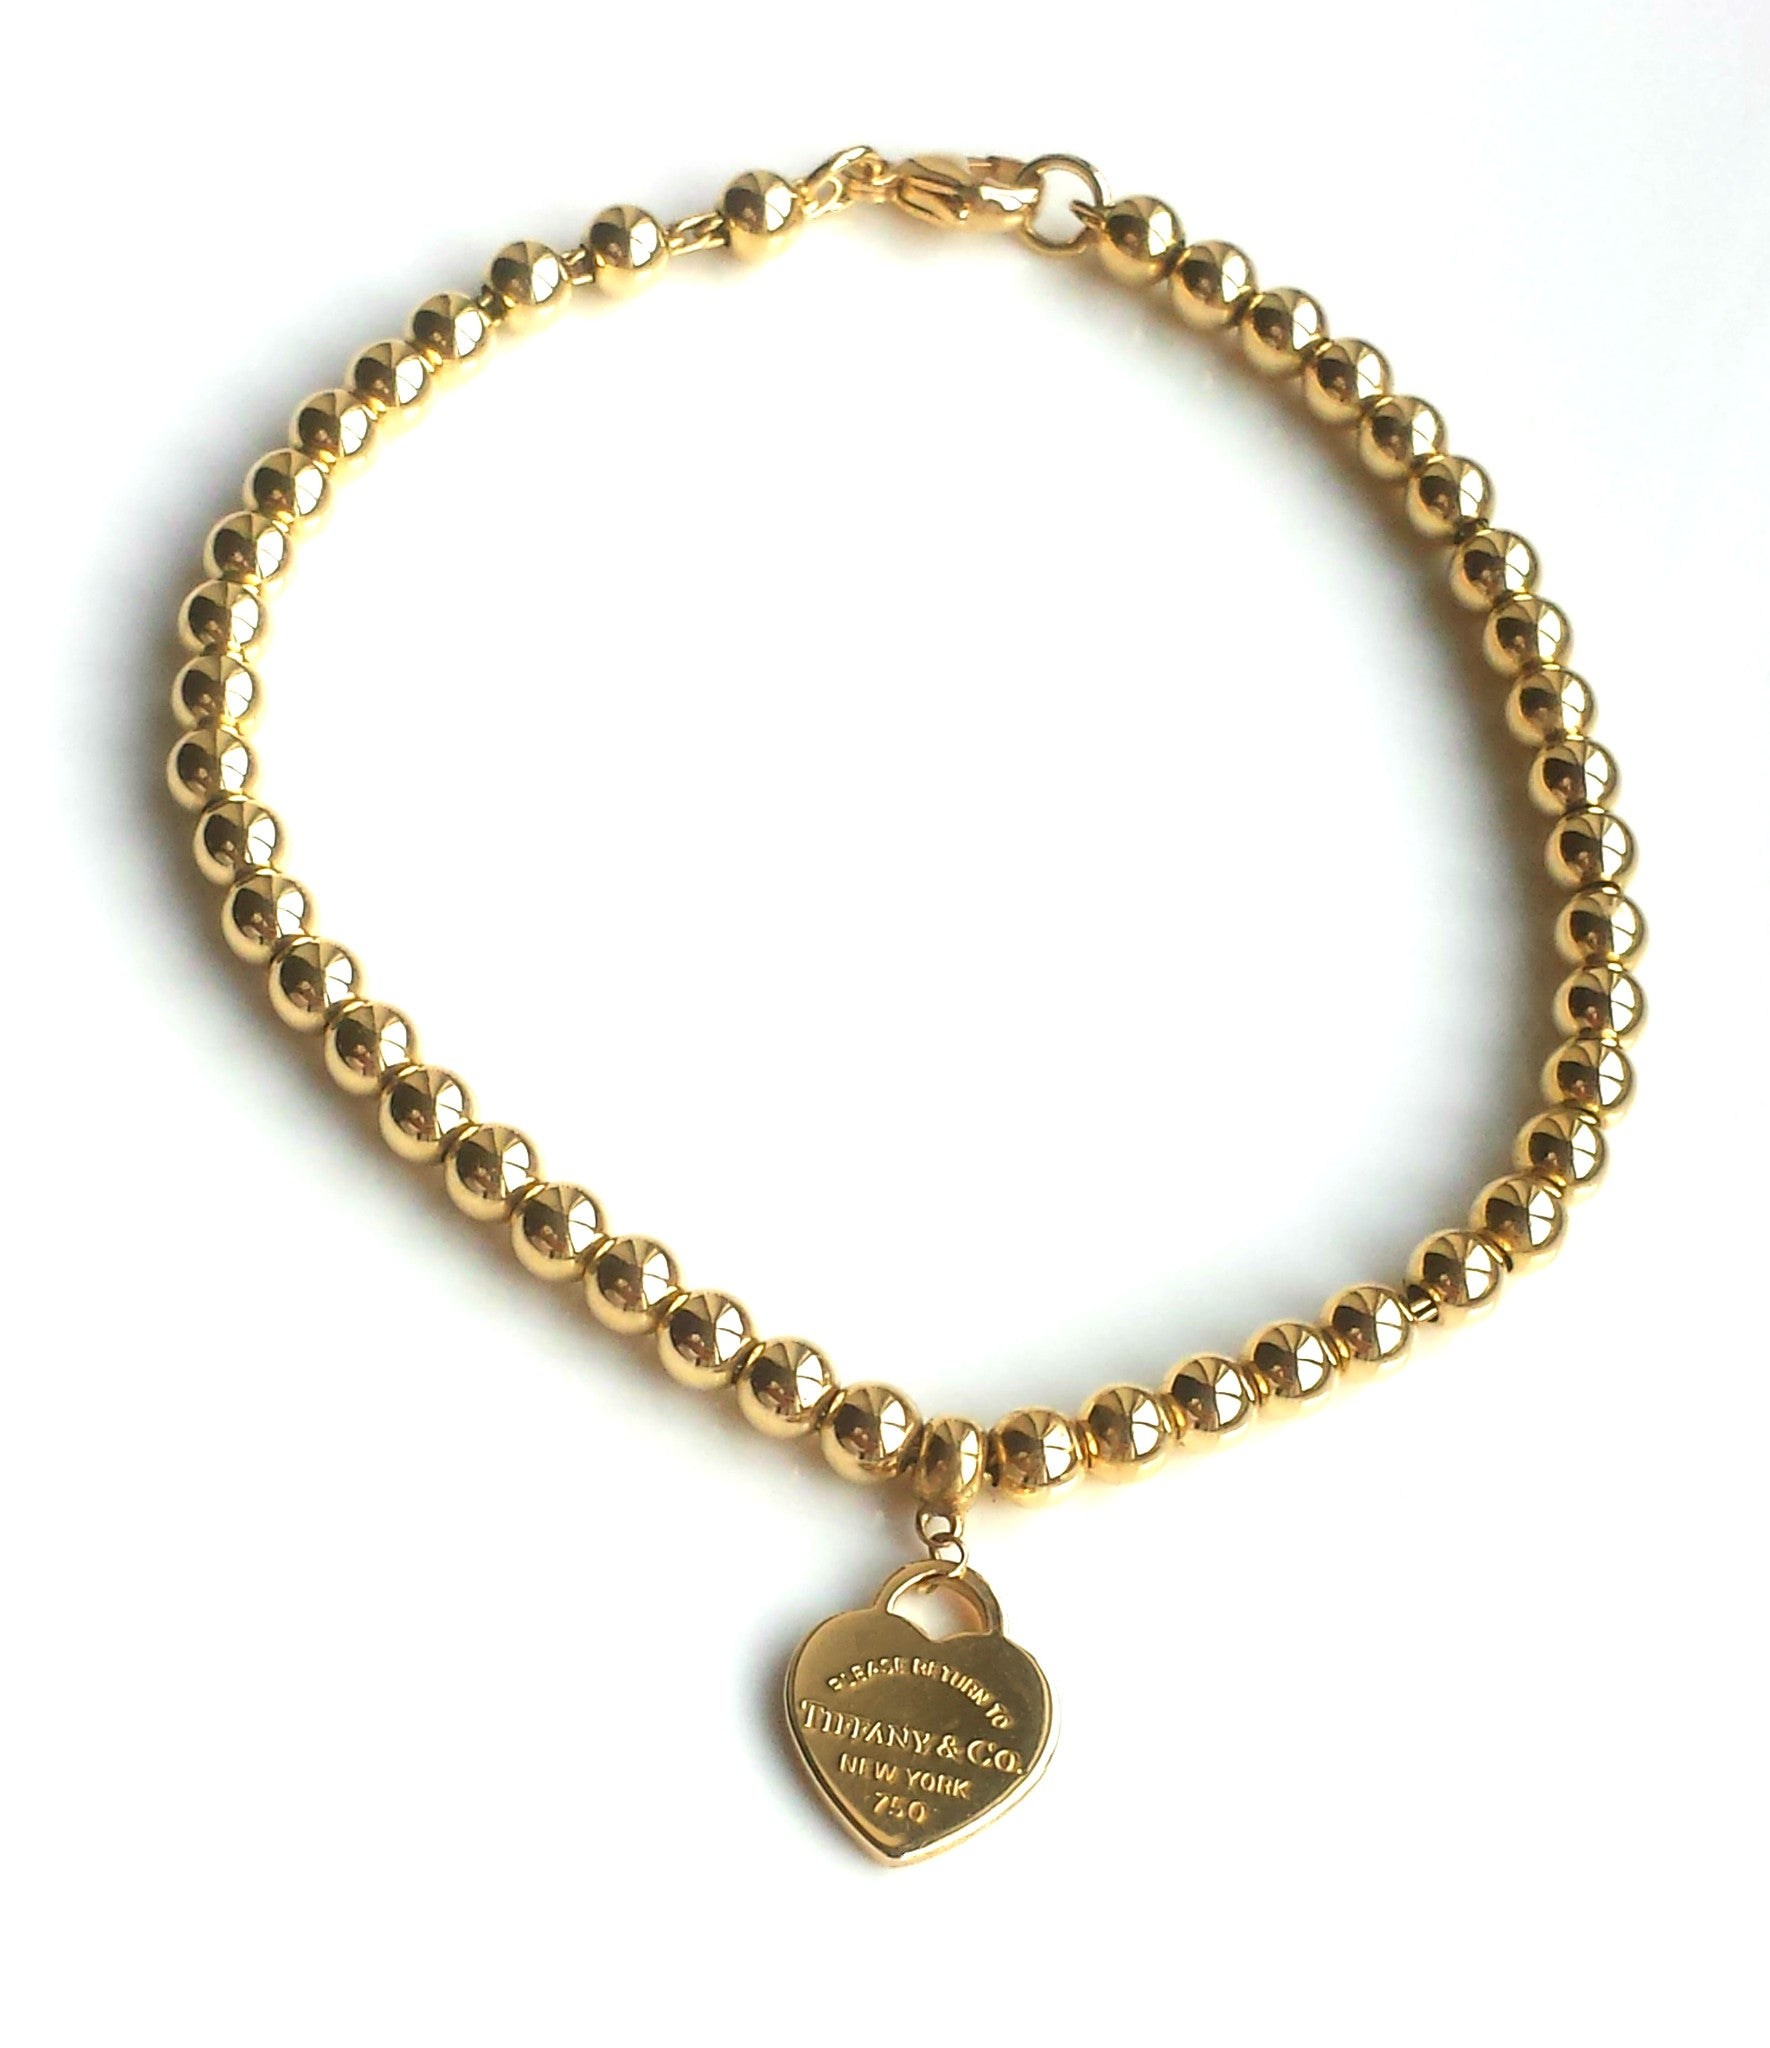 afe8c7df6 Tiffany & Co. Return to 18k Yellow Gold Bead Bracelet & Mini Heart Tag –  NEW!